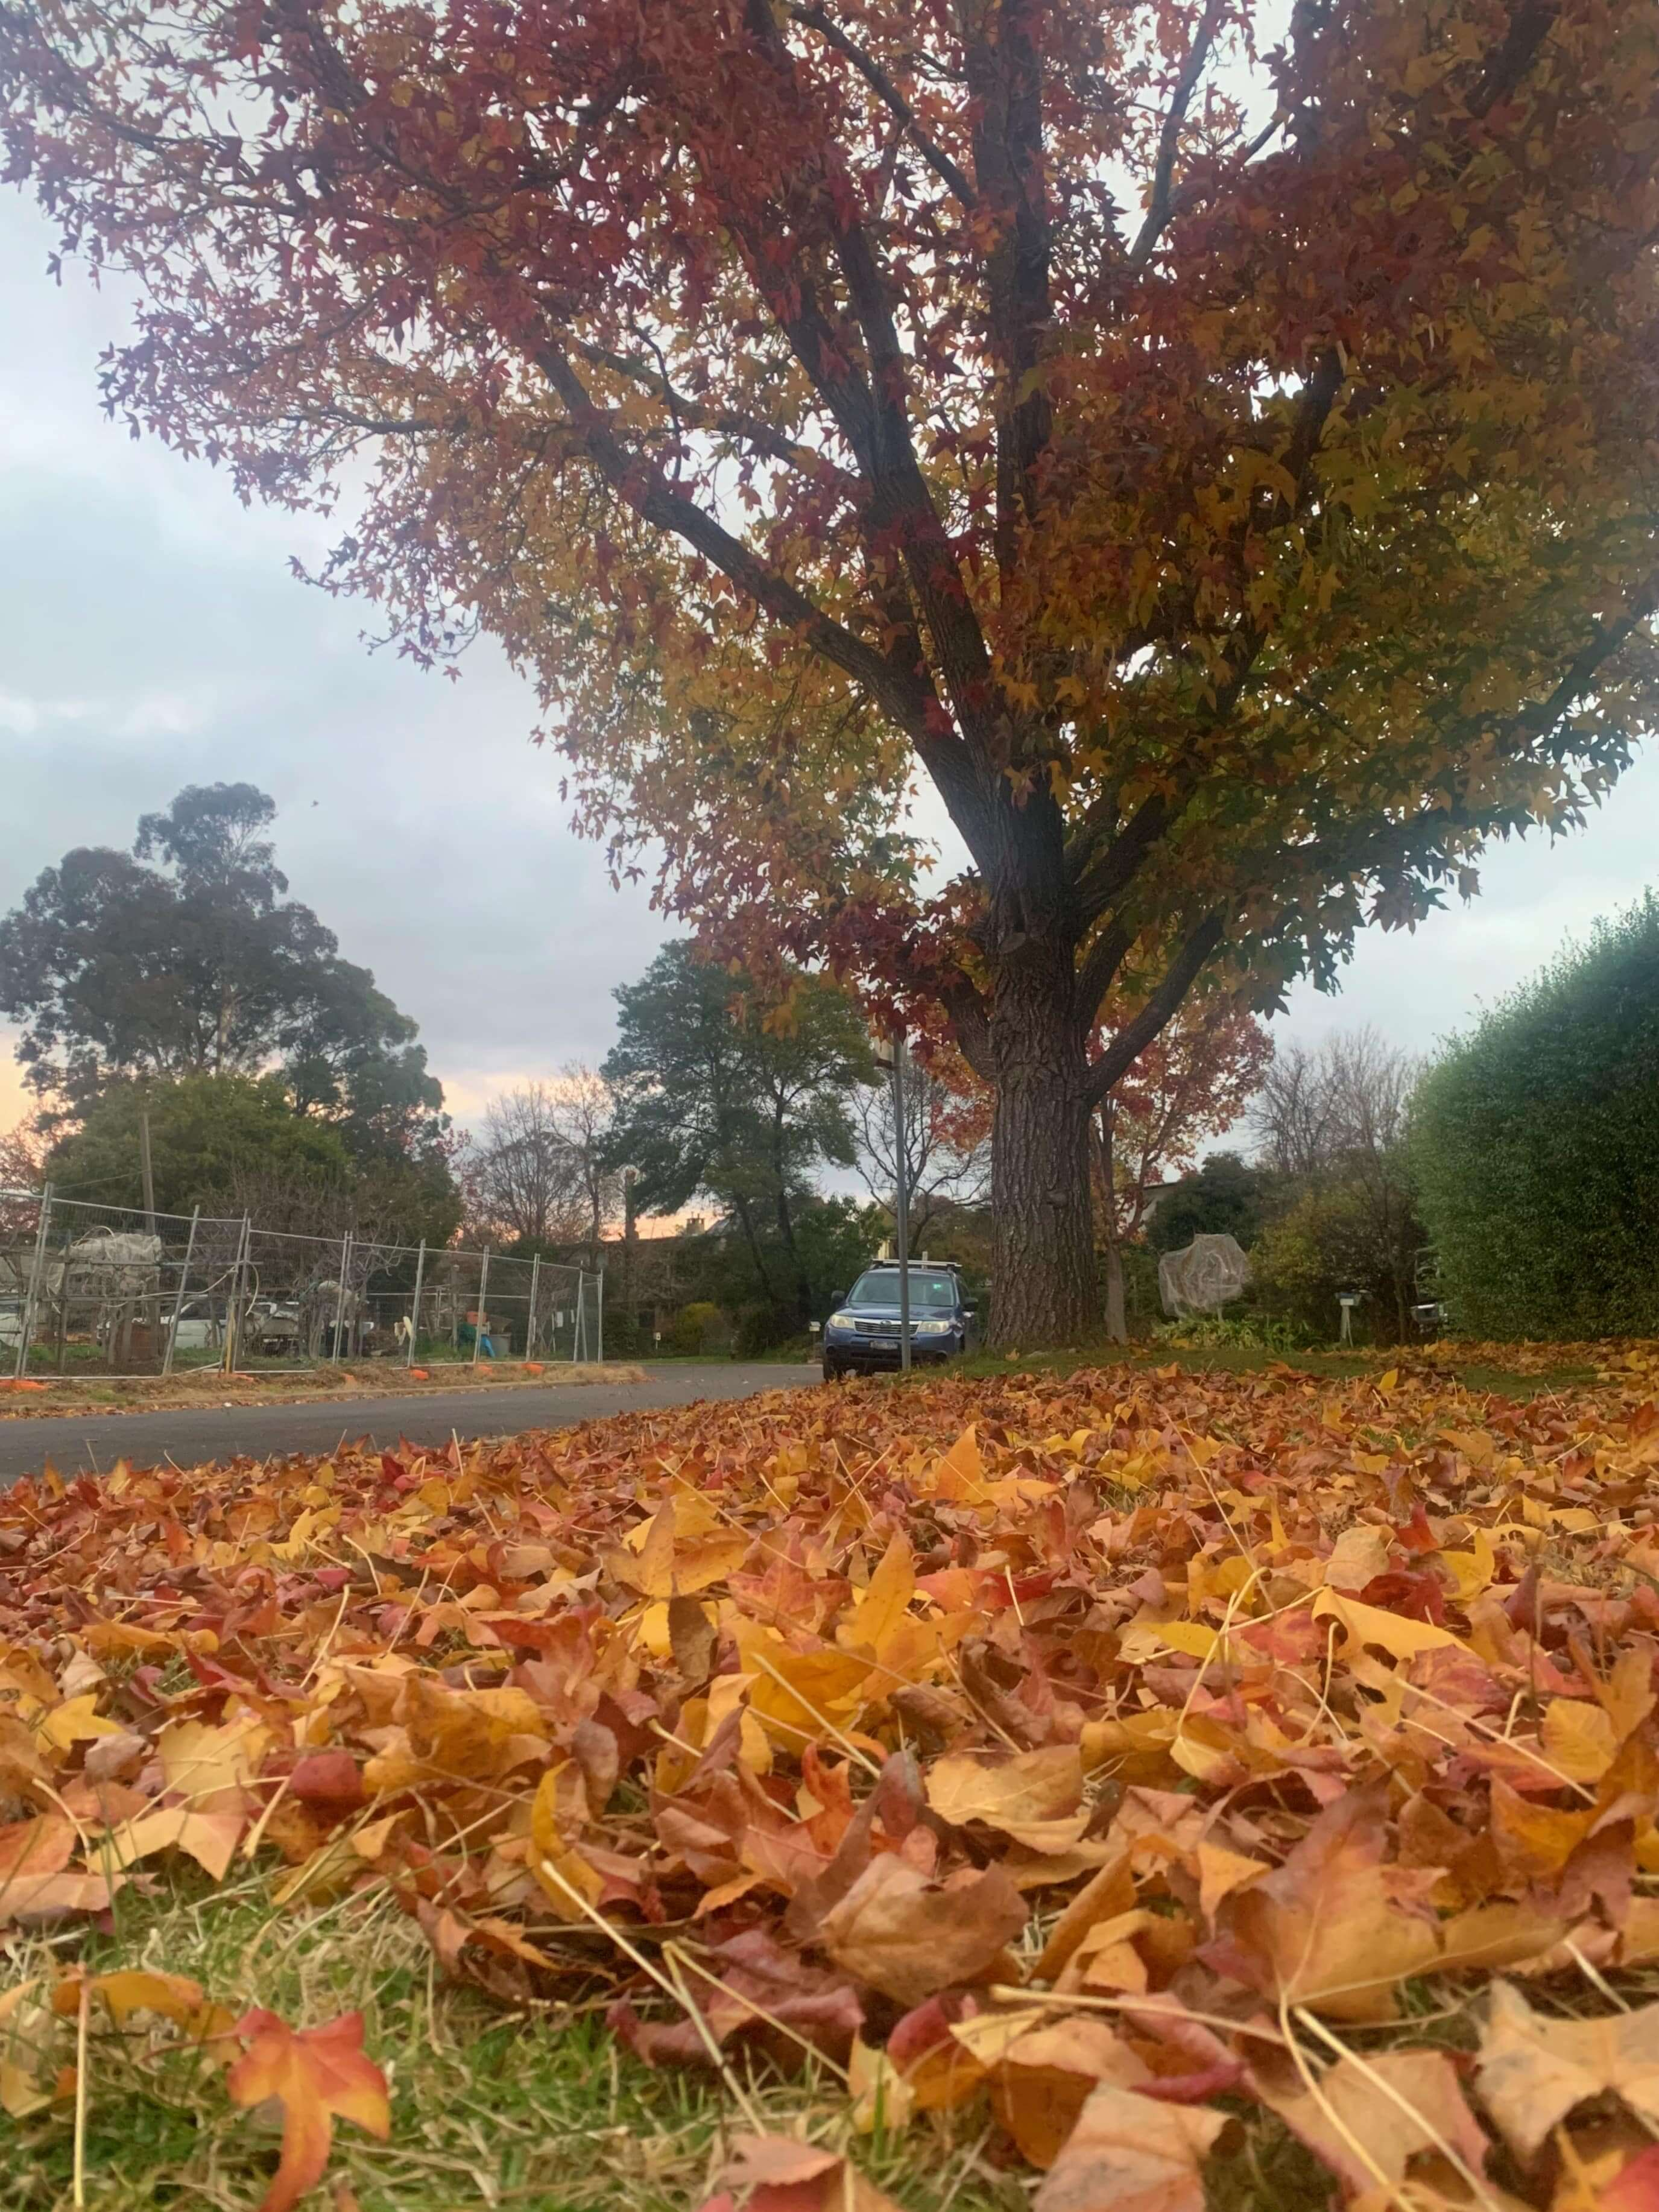 closeup photo of fallen autumn leaves with the tree in the background